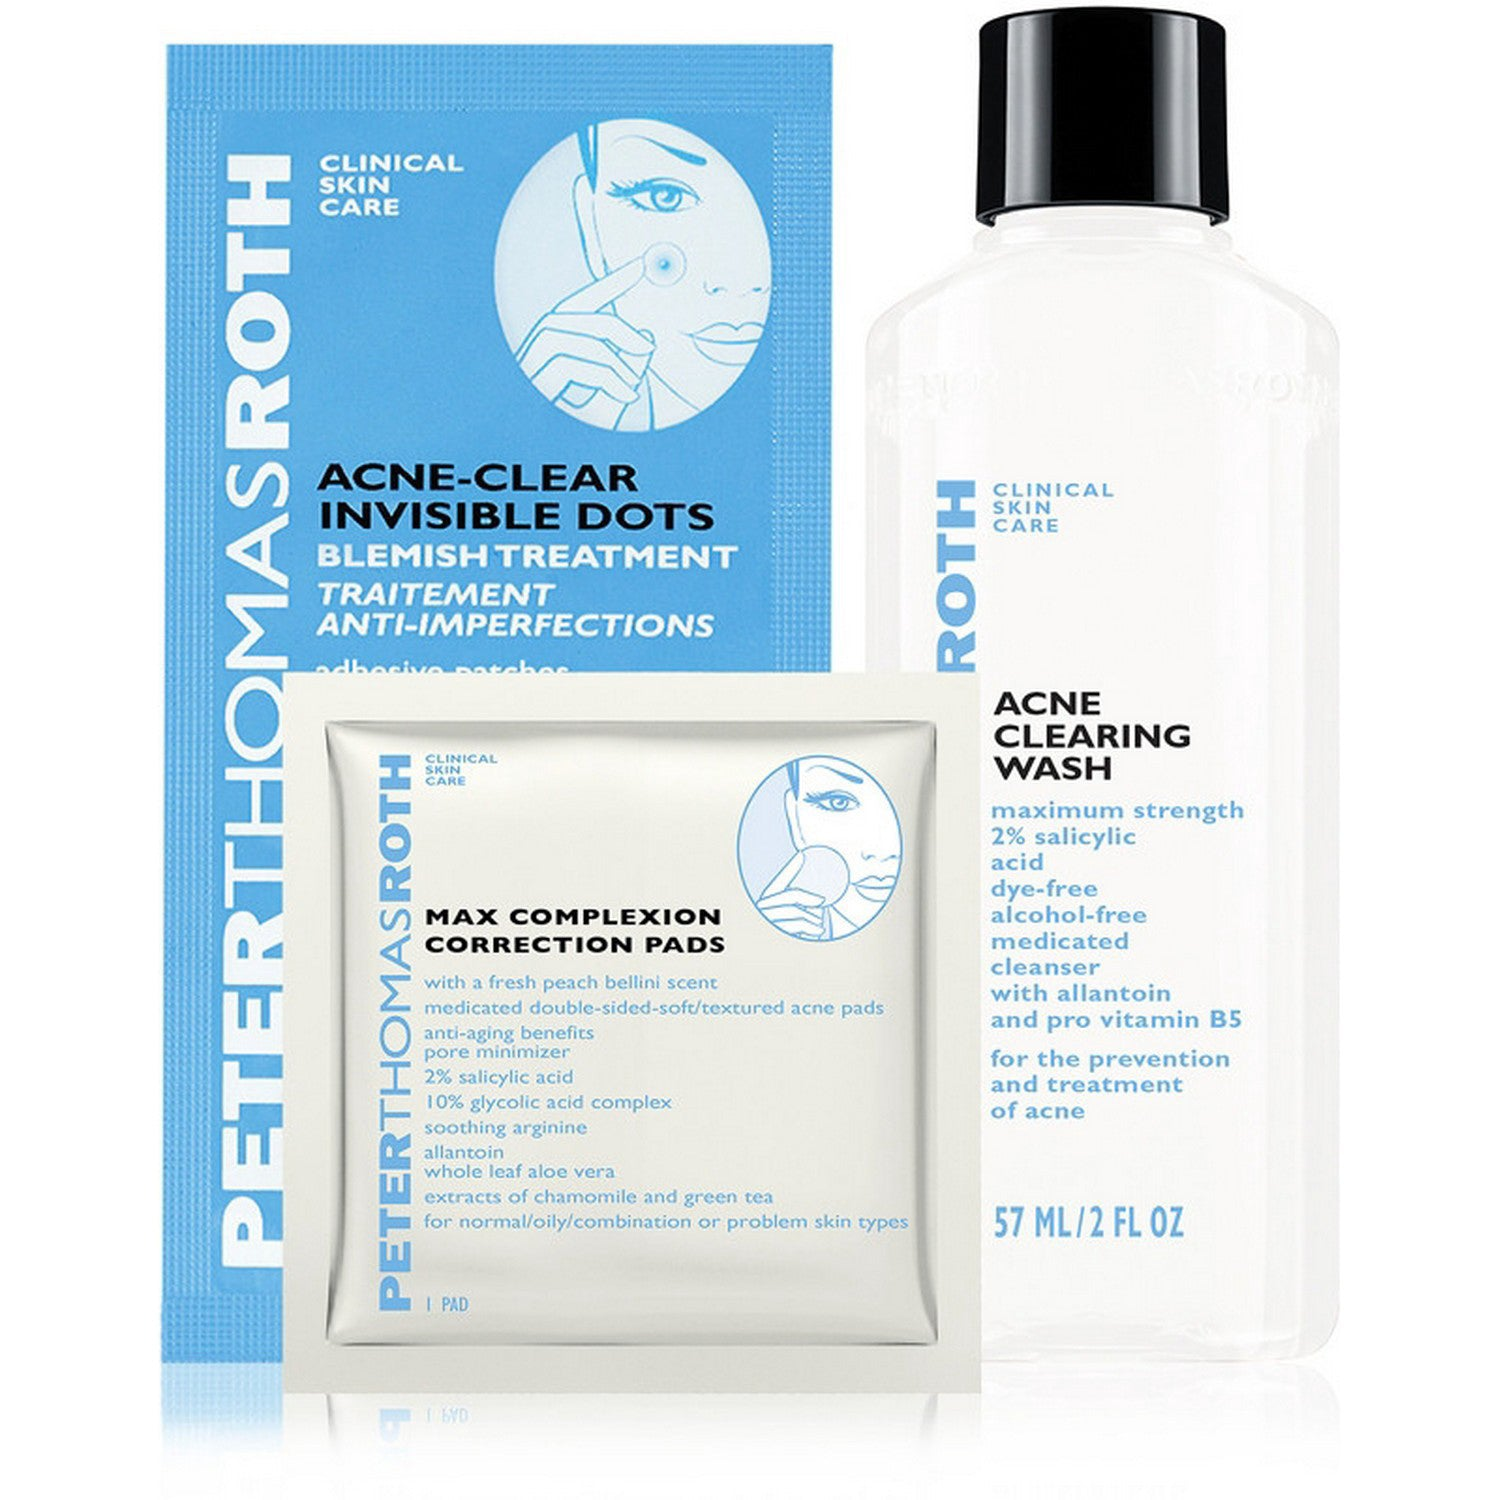 PETER THOMAS ROTH ~ ACNE DISCOVERY KIT *2018*